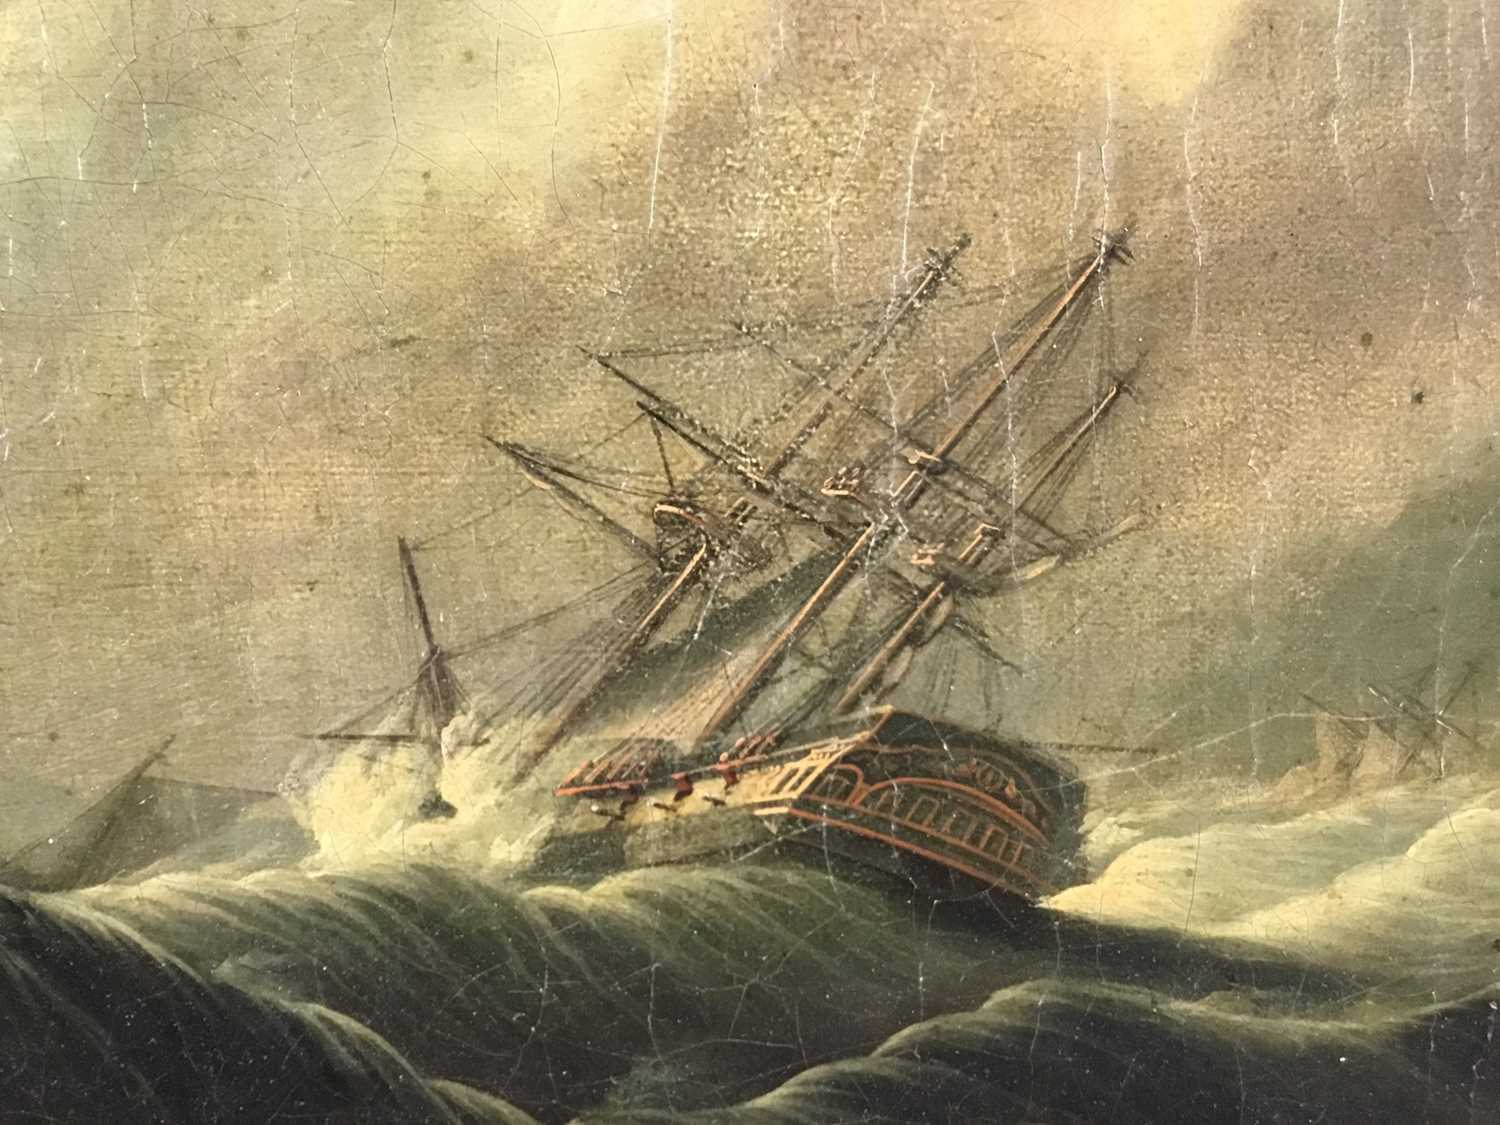 Attributed to Joseph Vernet (1714-1789) oil on canvas - shipping crashing against the rocks, 55cm x - Image 2 of 12